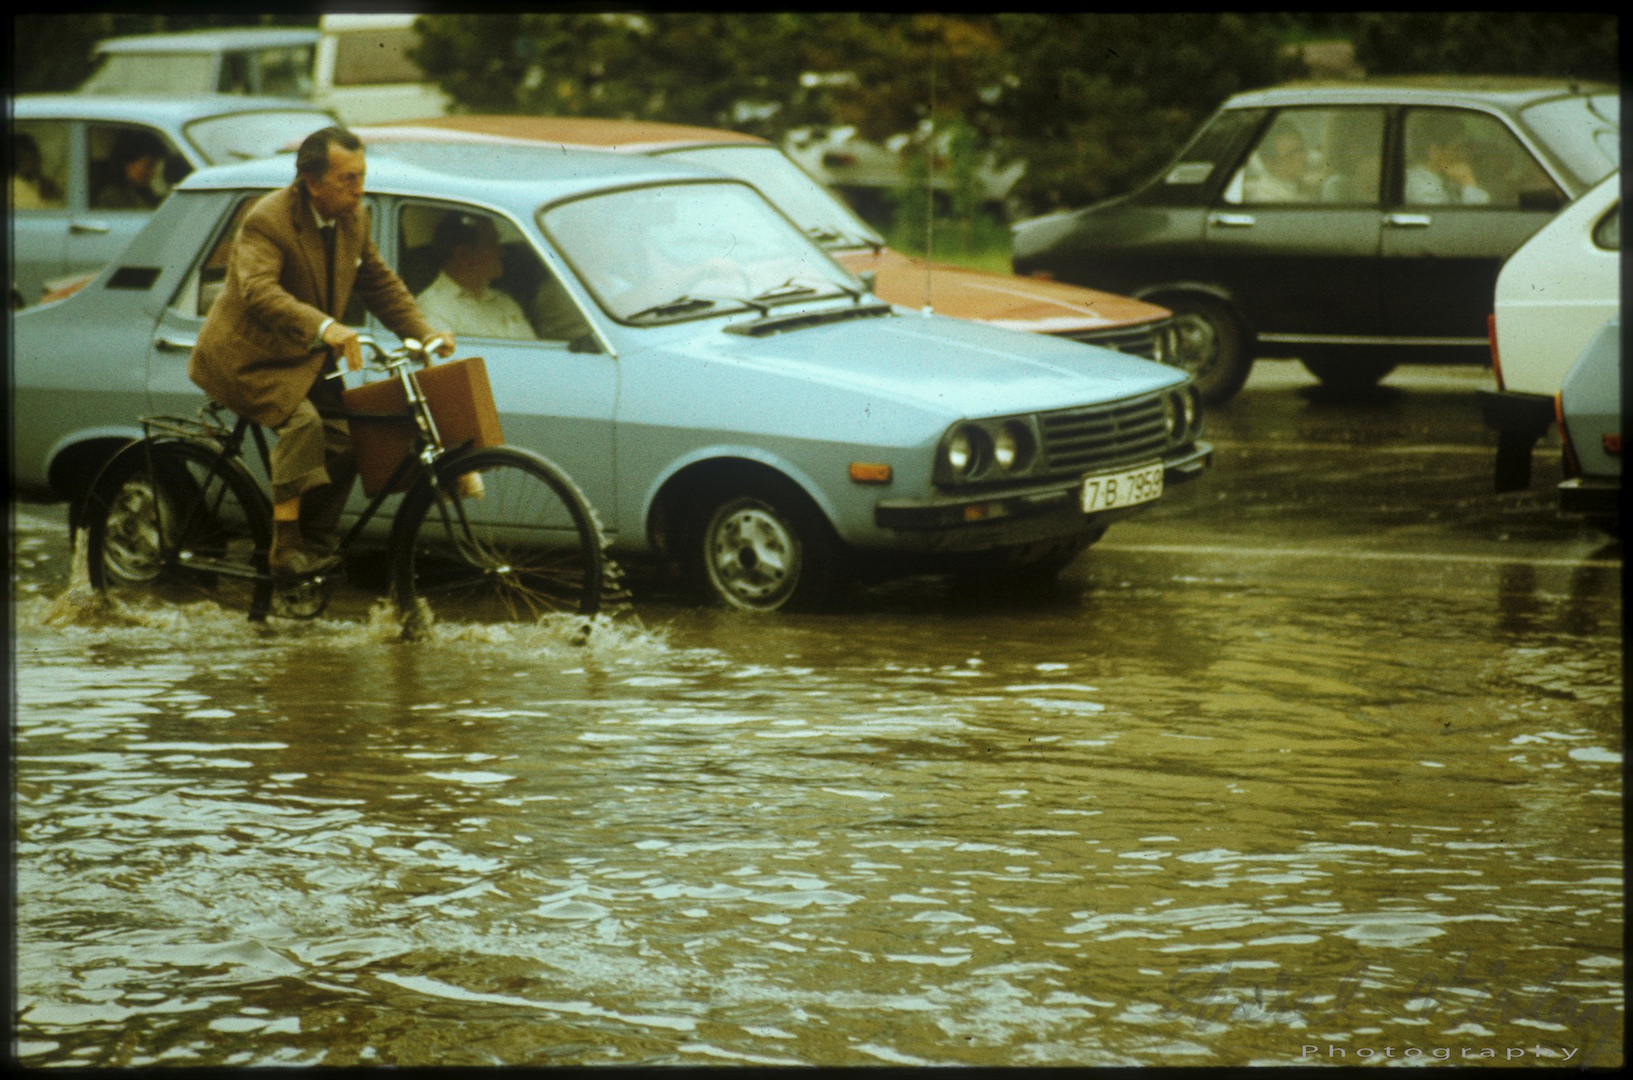 A man riding his bike to office on a dirty inundated street.